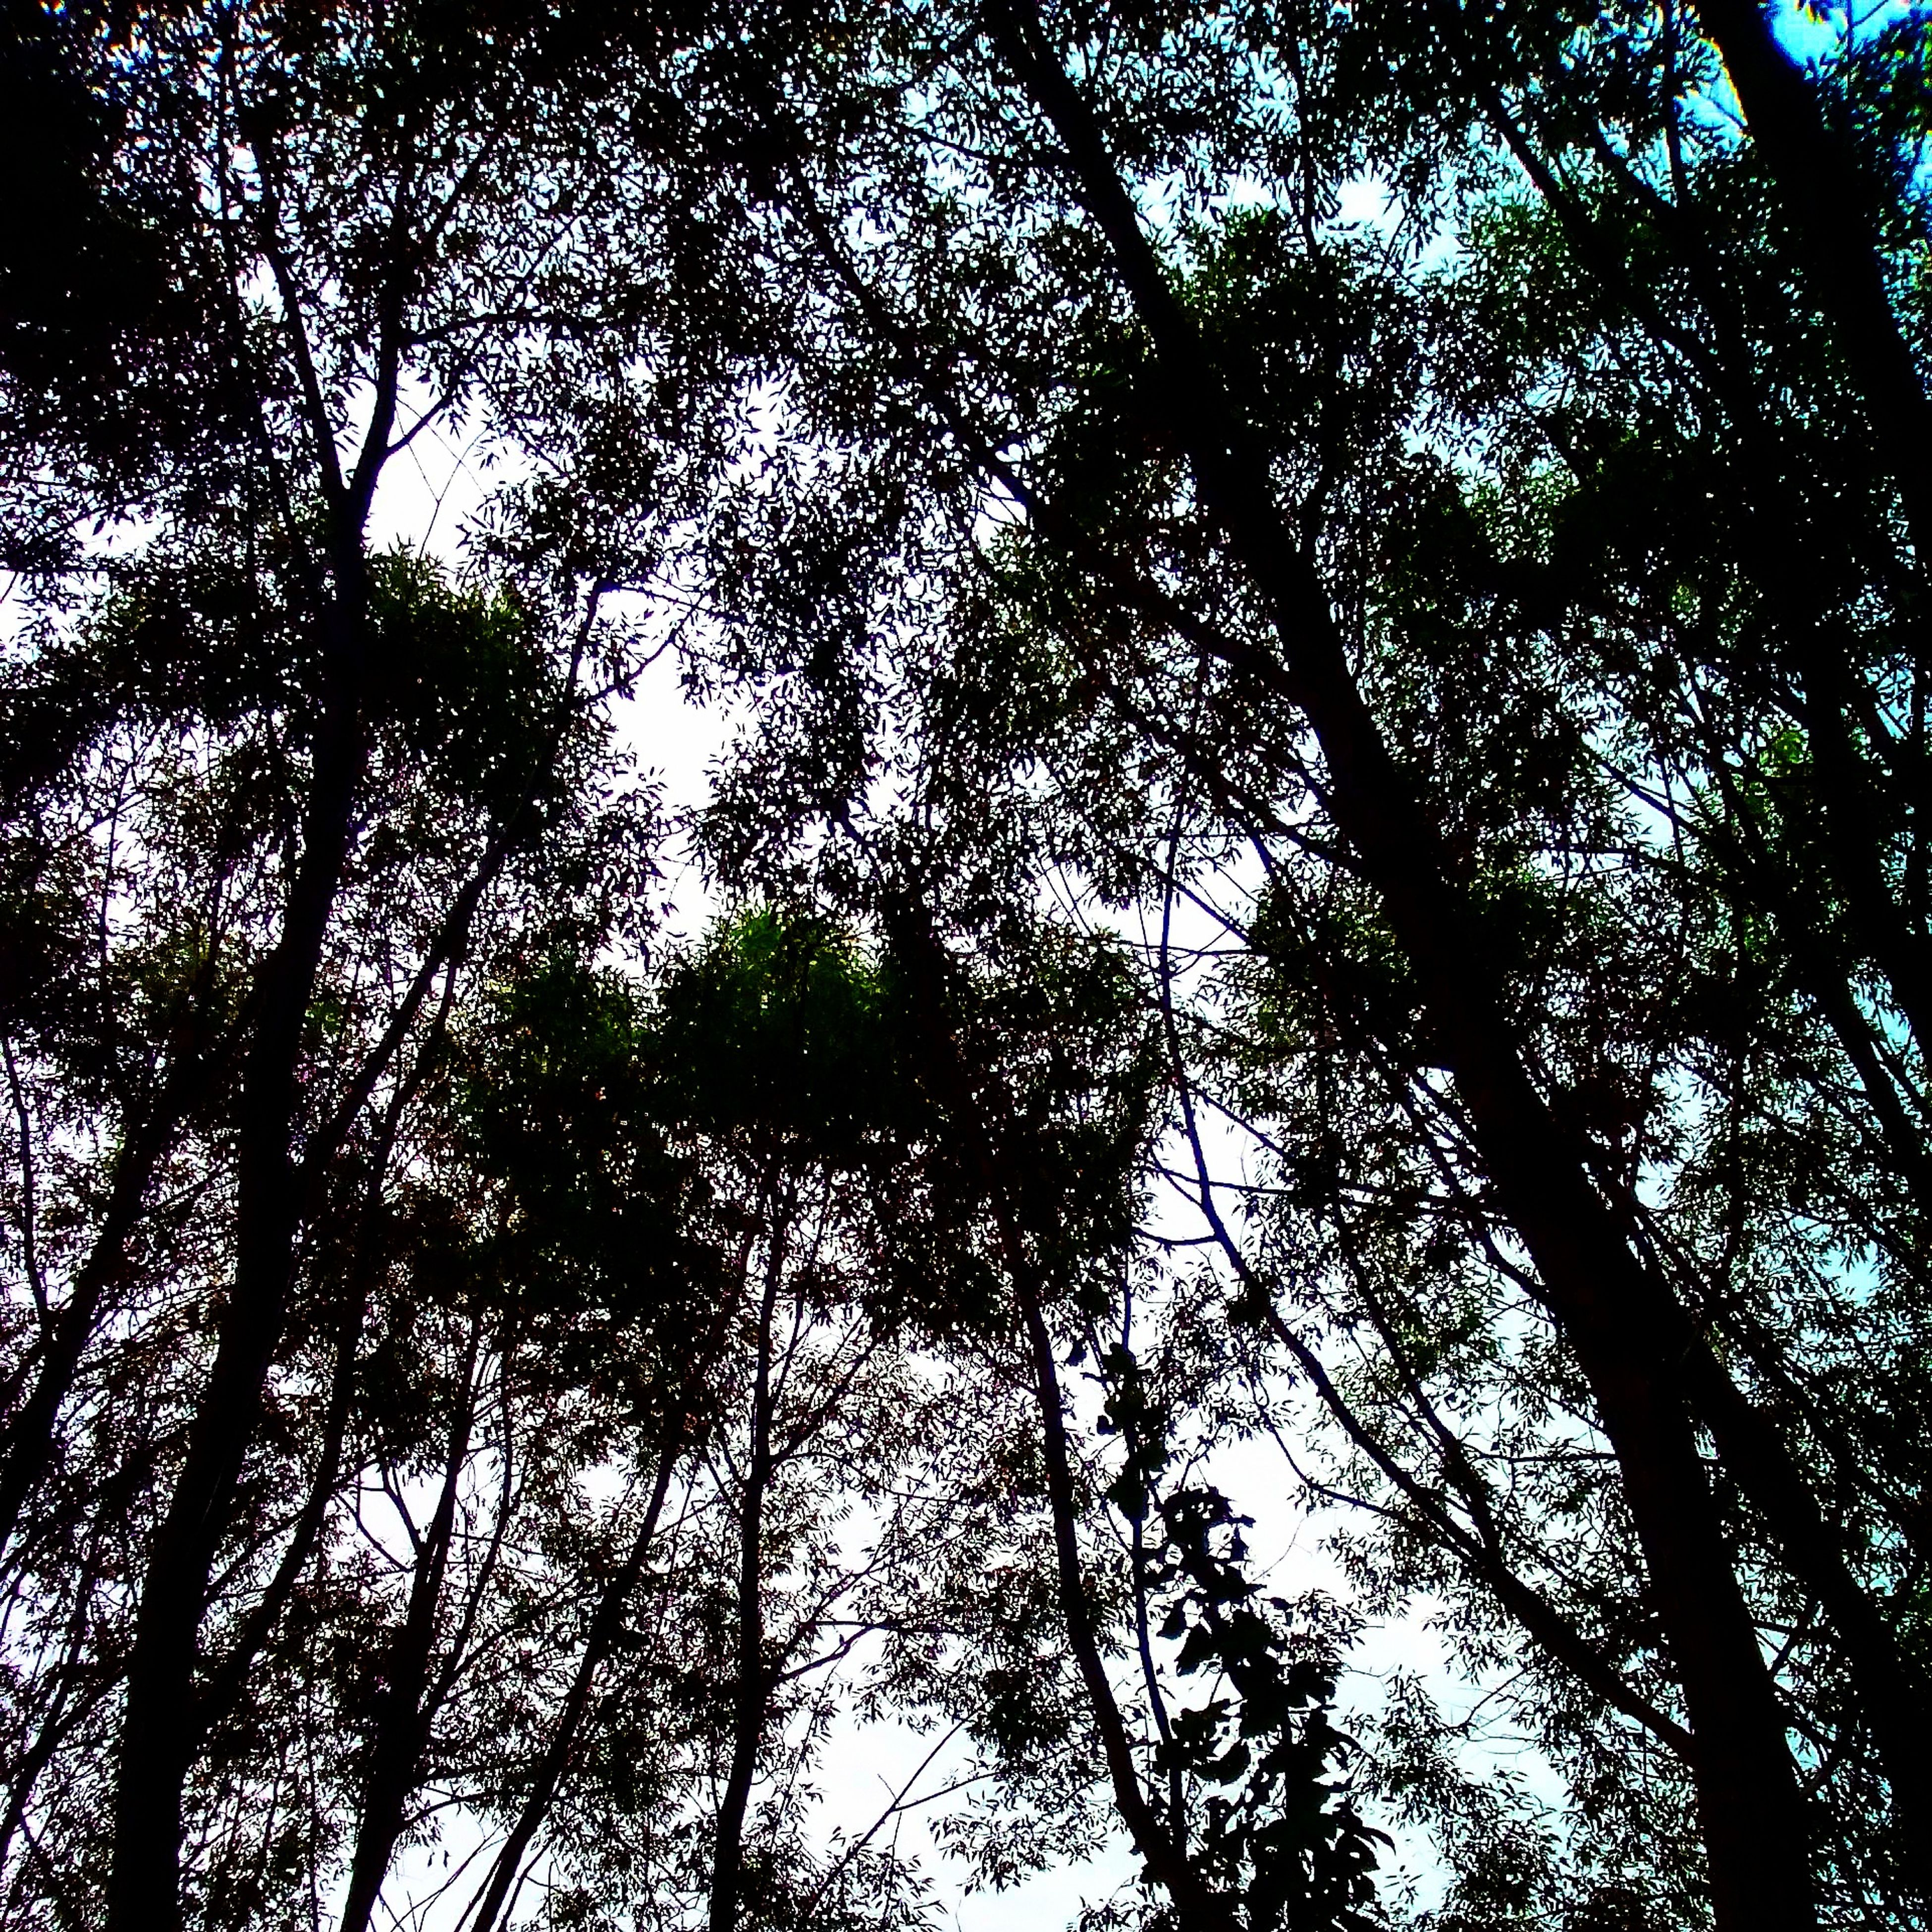 tree, low angle view, branch, growth, tranquility, nature, beauty in nature, forest, scenics, tranquil scene, tree trunk, sky, outdoors, no people, day, backgrounds, woodland, idyllic, non-urban scene, full frame, green color, lush foliage